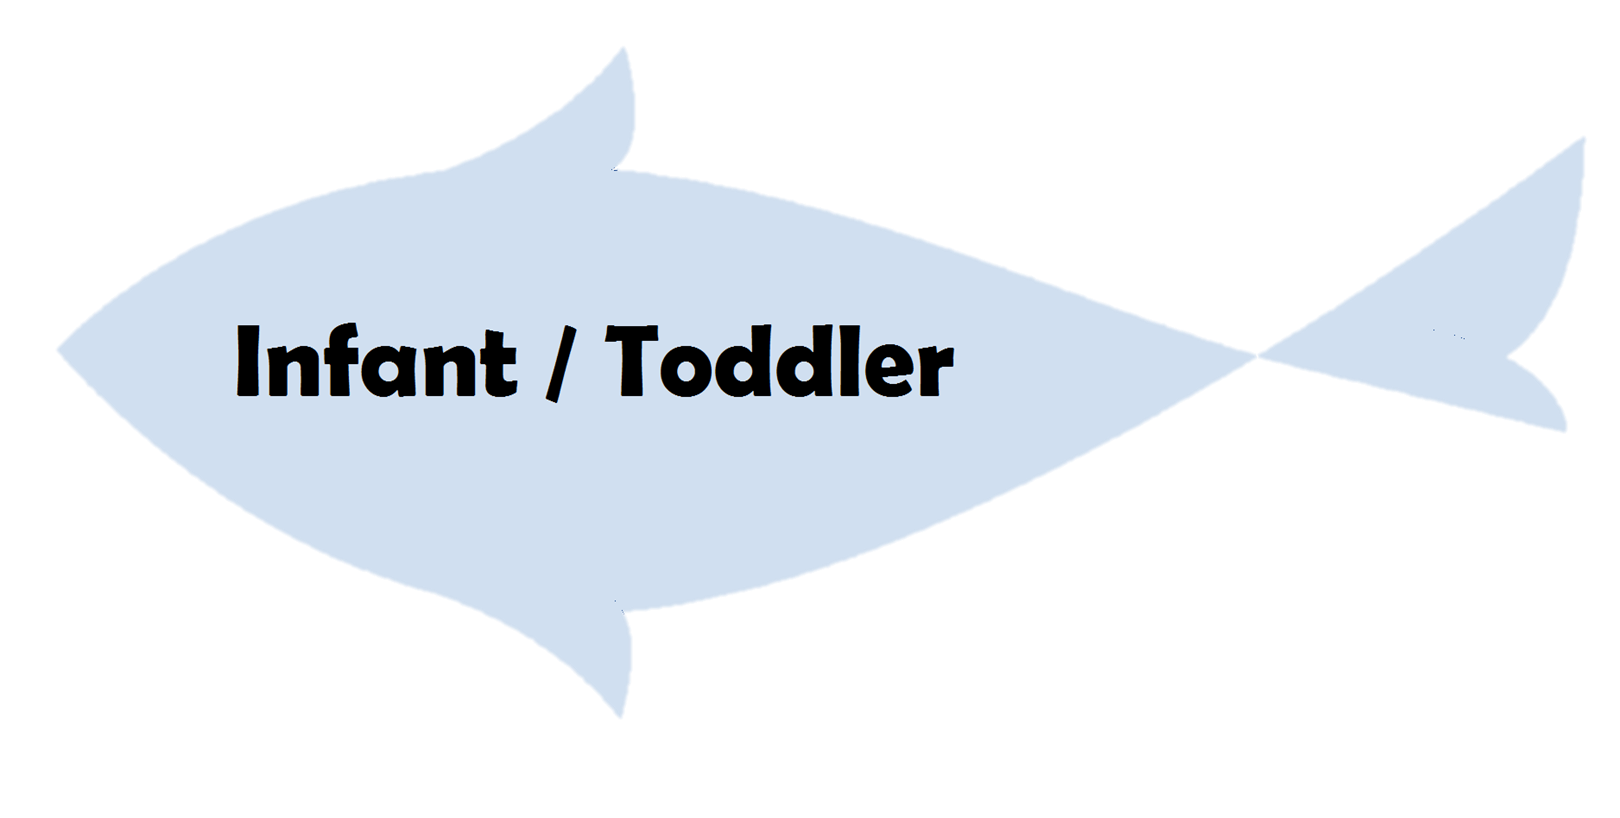 Infant and Toddler in Bubble